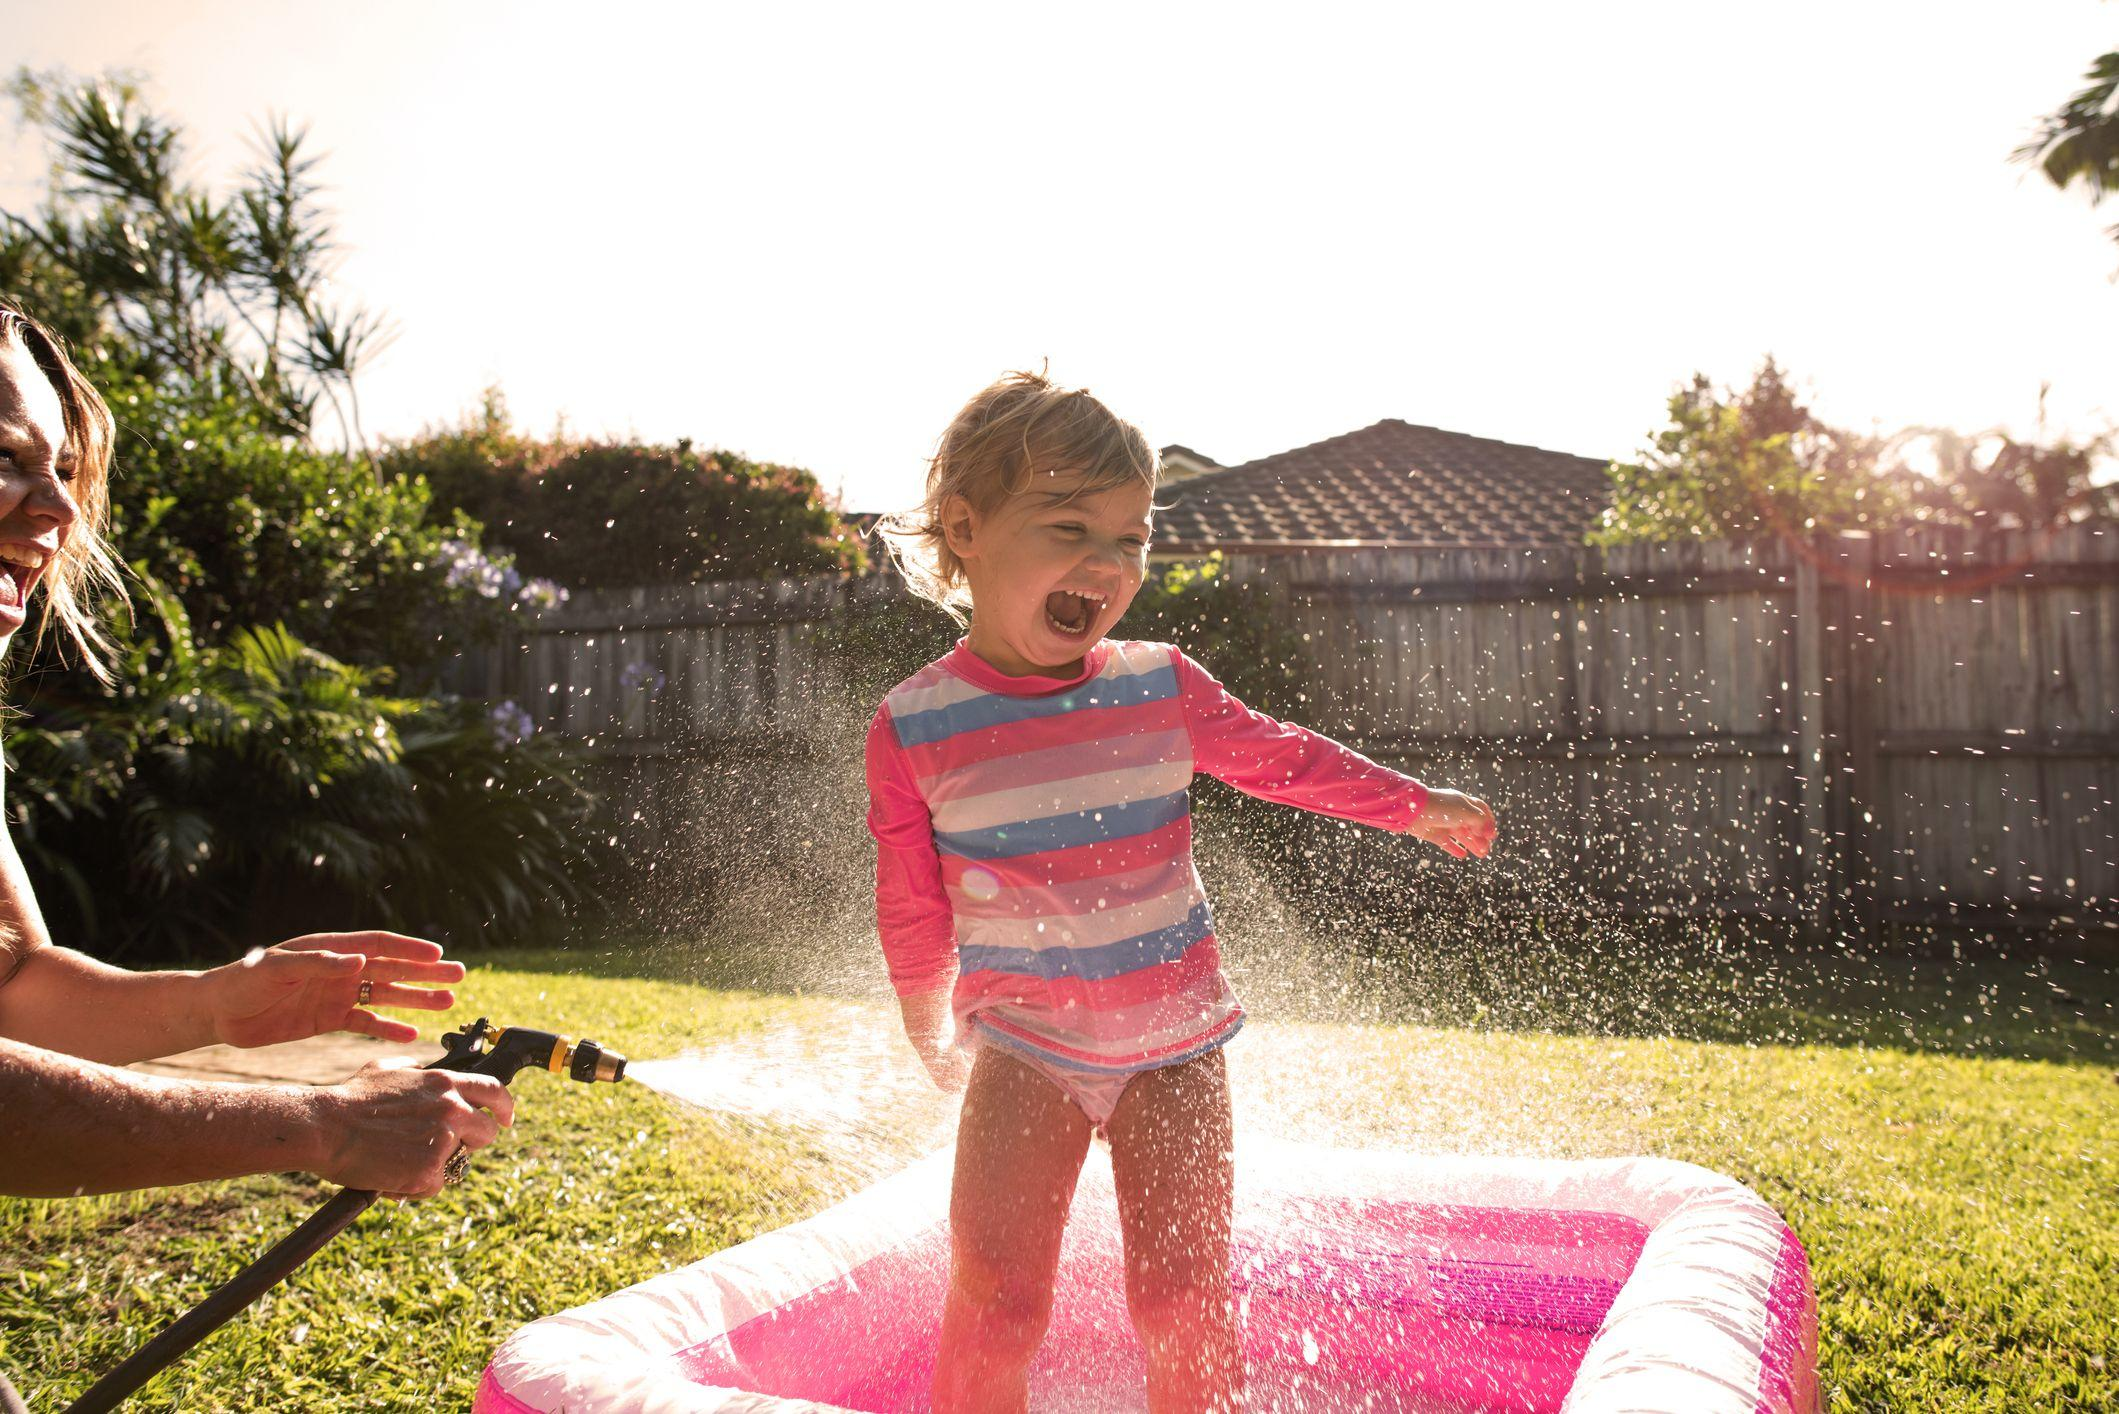 "<p>If you're like many parents who planned your family summer vacation earlier in the year, you've probably spent the past few months trying to make new arrangements. Many families are skipping the flights and renting RVs for road trips. <a href=""https://www.countryliving.com/life/travel/a32689320/disney-world-reopening-july-11/"" rel=""nofollow noopener"" target=""_blank"" data-ylk=""slk:Disney World plans on reopening July 11"" class=""link rapid-noclick-resp"">Disney World plans on reopening July 11</a>, but you might not be ready for that type of vacation. According to a survey from MMGY Travel Intelligence, in partnership with the U.S. Travel Association, 47 percent of respondents said they'd be more likely to travel by car. </p><p>You've likely set up a routine for your kids while they were under quarantine. Maintaining a routine is just as important for the summer. ""Encouraging routines around meals, naps and bedtimes, even in the summer, will help break up the day and provide structure for your little ones,"" says Nicole Grossmayer-Mercado, executive director of Little Smiles, a nonprofit that helps caring professionals bring joy to children in tough situations. But more importantly, maintain positivity. ""Above all, parents should be kind to themselves and not put pressure on themselves to create a backyard Disney World this summer,"" she says. ""Children will be happy if they see their parents are happy.""</p><p>The good news is, businesses across the country have taken note and pivoted on their summer offerings, but there's a lot to consider. In a survey of 1,100 moms by Party City, almost 80 percent of moms said they were concerned on how they would entertain their children after 2 to 3 months of home schooling. By this time, you've probably tried all of the <a href=""https://www.countryliving.com/shopping/g31979328/family-board-games/"" rel=""nofollow noopener"" target=""_blank"" data-ylk=""slk:family board games"" class=""link rapid-noclick-resp"">family board games</a> and watched plenty of <a href=""https://www.countryliving.com/life/entertainment/g32025163/funny-family-movies/"" rel=""nofollow noopener"" target=""_blank"" data-ylk=""slk:funny family movies"" class=""link rapid-noclick-resp"">funny family movies</a>. If you're juggling work and childcare, virtual summer camps may be a great way to keep your kids engaged during the day. But if you're over Zoom and want to limit screen time (unless it's <a href=""https://www.countryliving.com/life/kids-pets/g32033595/educational-tv-show-for-kids/"" rel=""nofollow noopener"" target=""_blank"" data-ylk=""slk:something educational"" class=""link rapid-noclick-resp"">something educational</a>!), this list offers plenty of fun ways to stay busy.</p>"